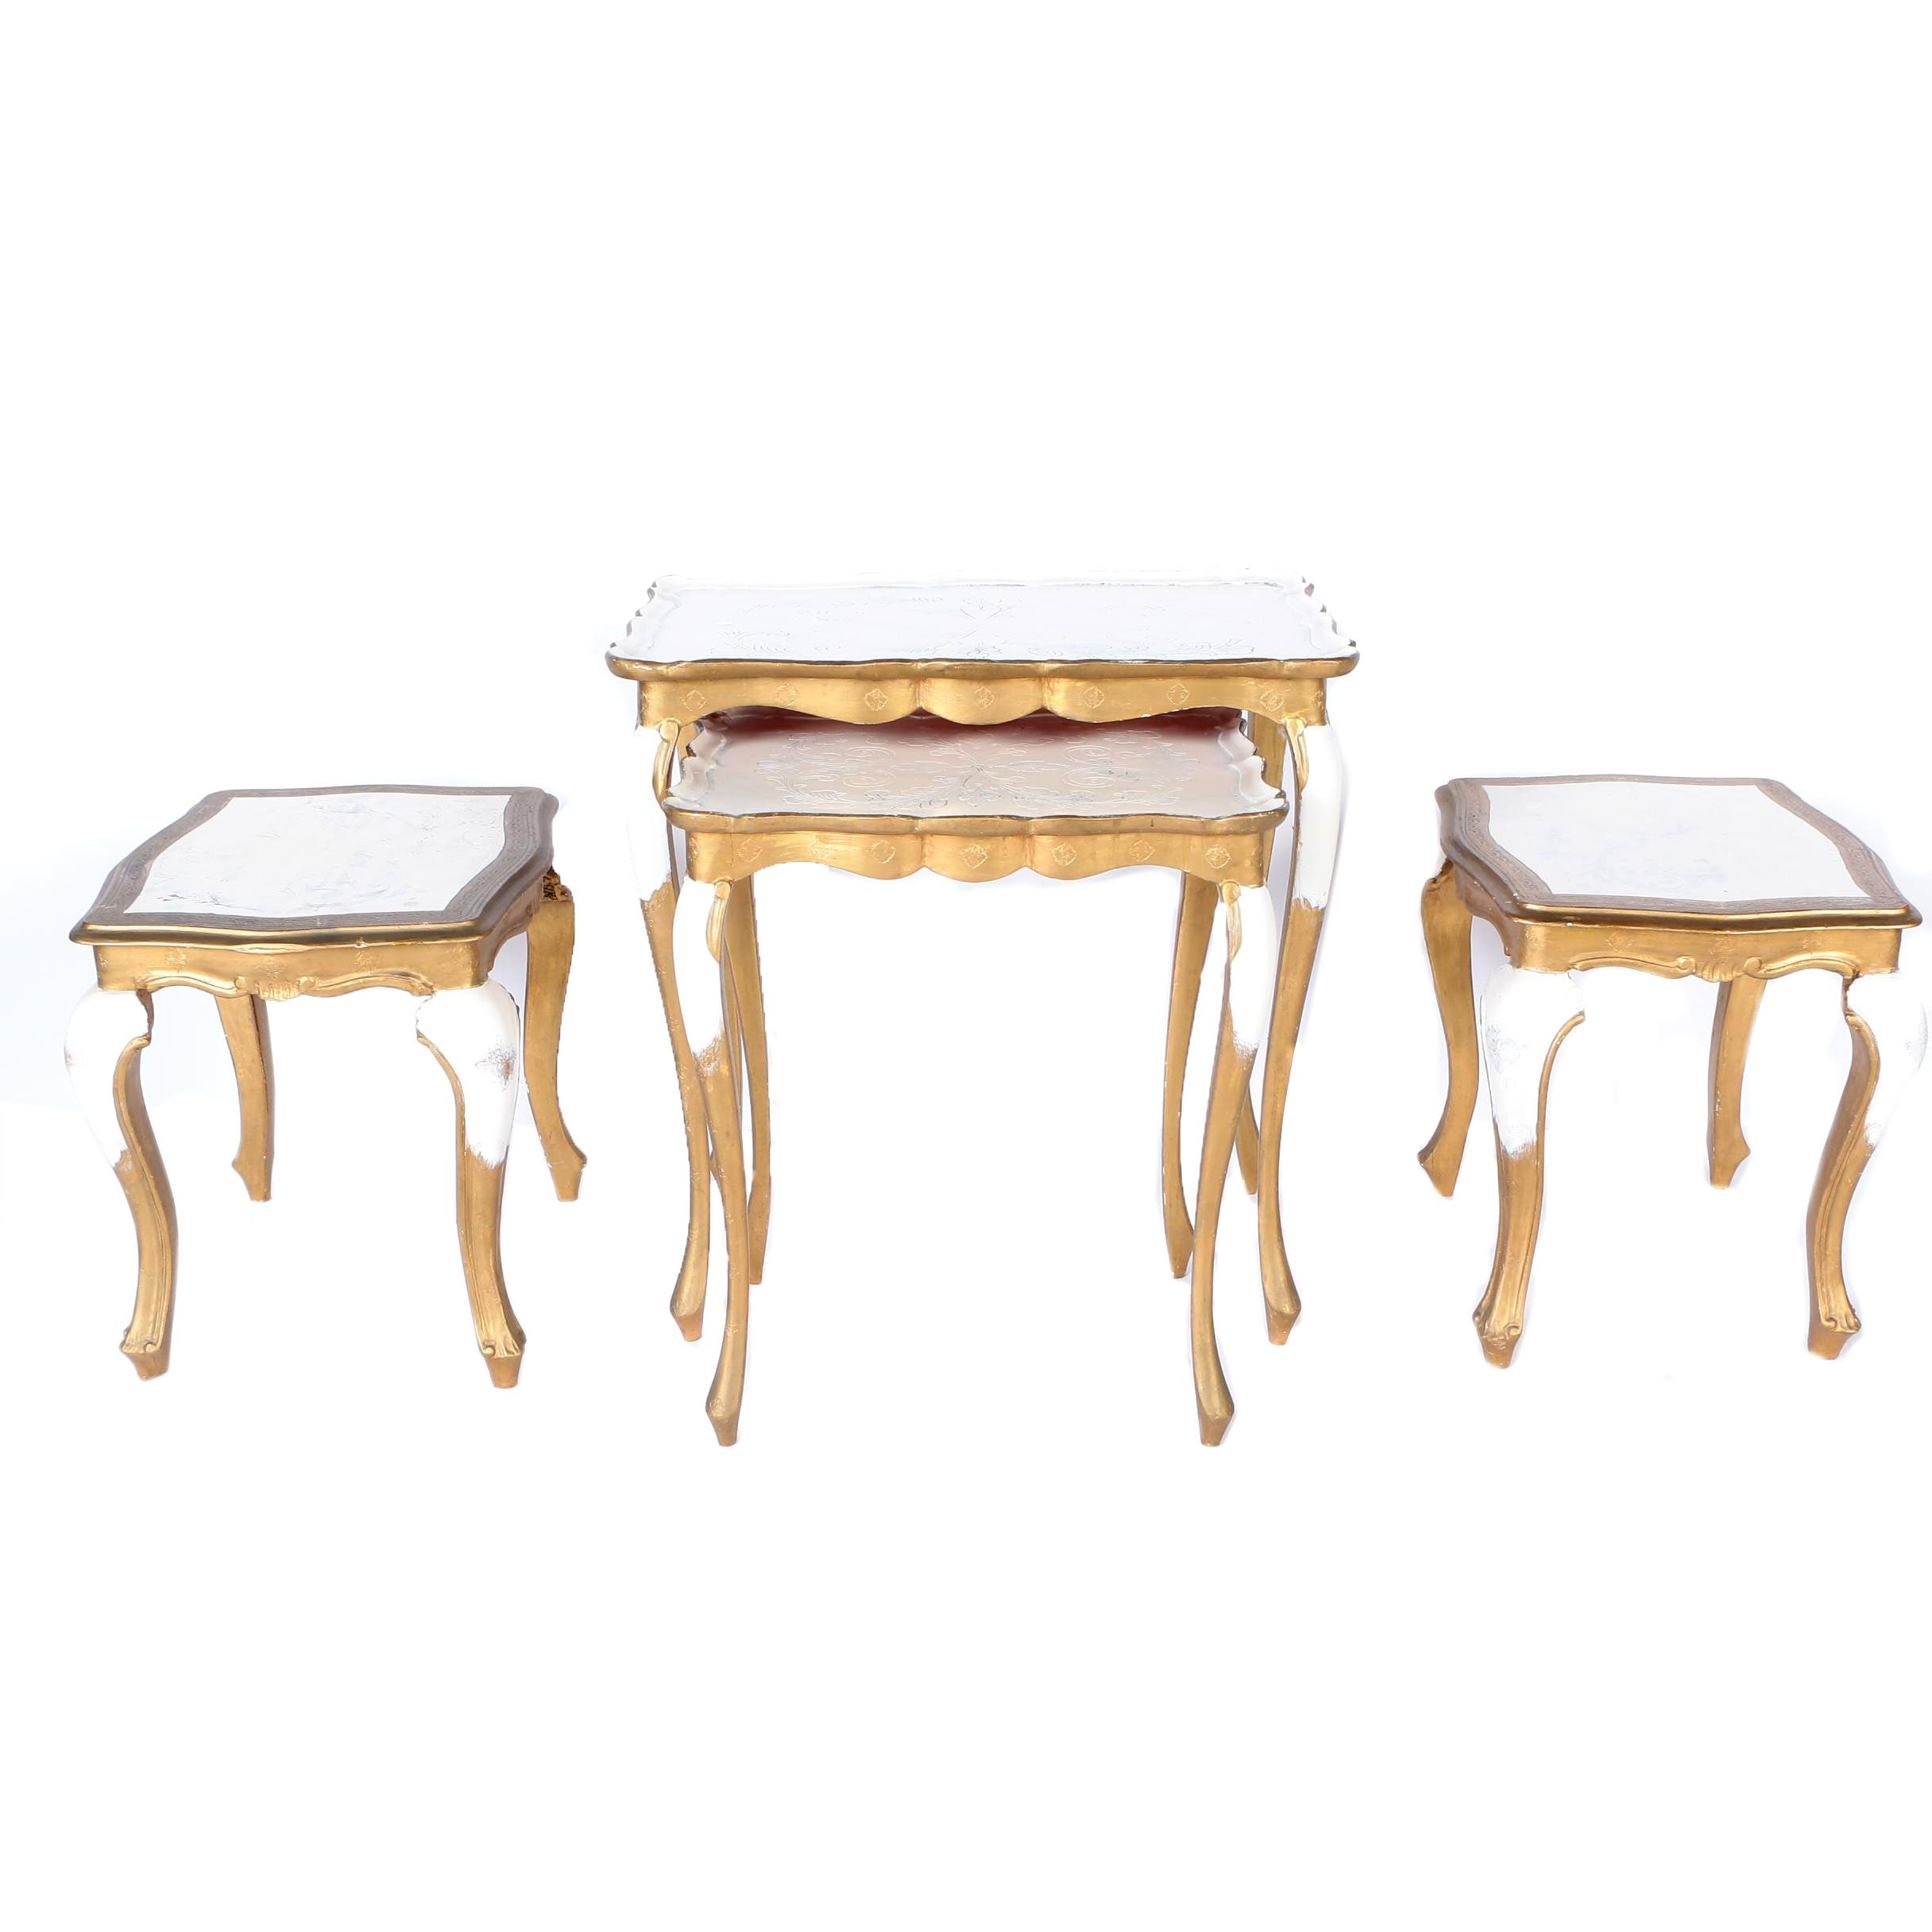 Set of Queen Anne Style Painted Accent Tables